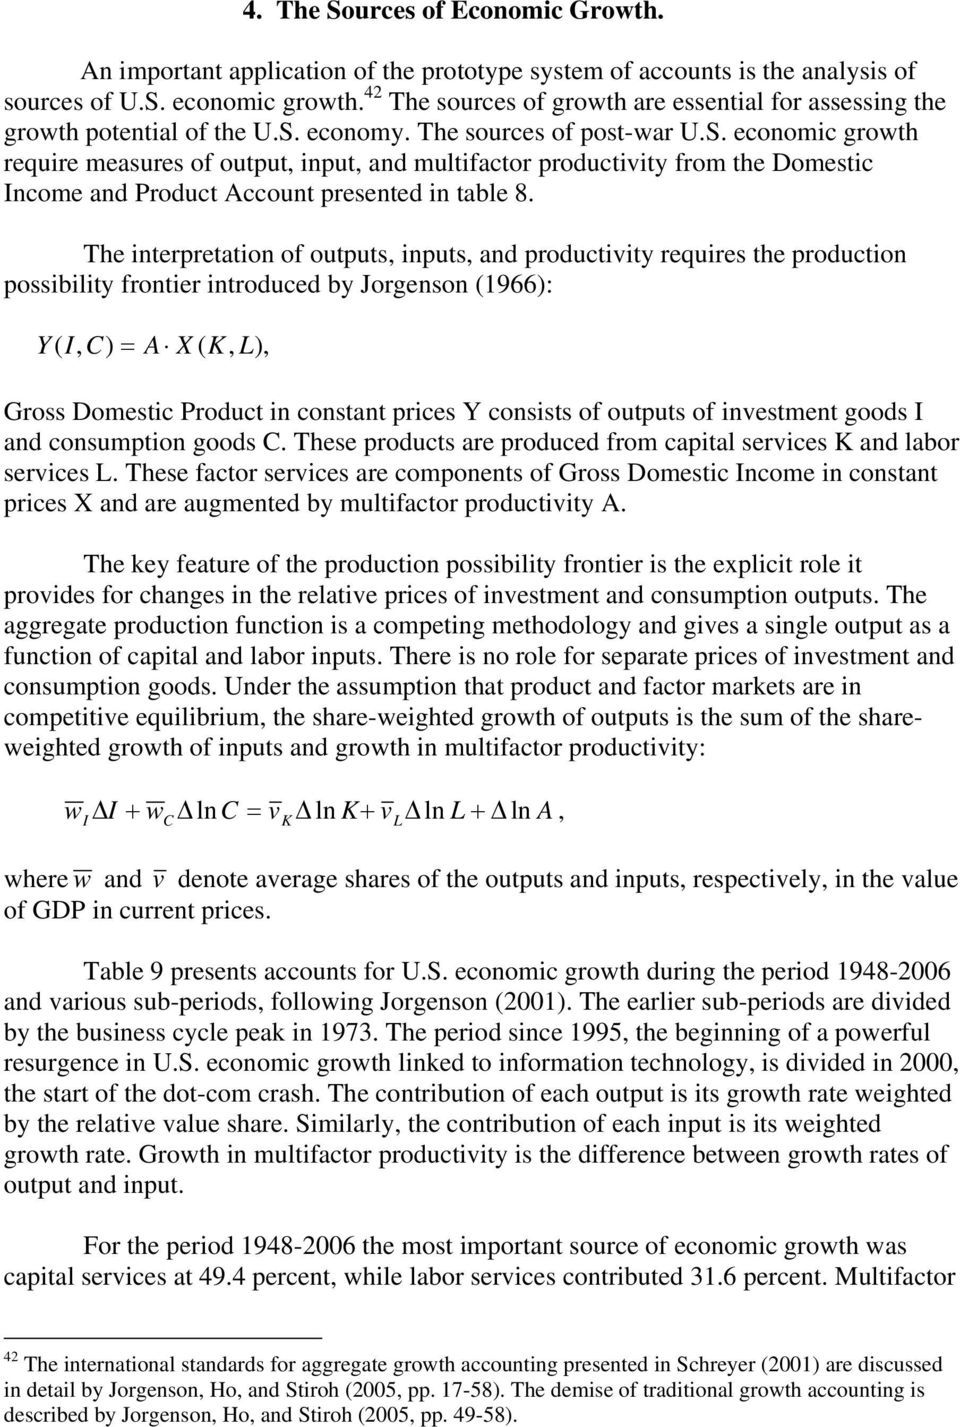 economy. The sources of post-war U.S. economic growth require measures of output, input, and multifactor productivity from the Domestic Income and Product Account presented in table 8.